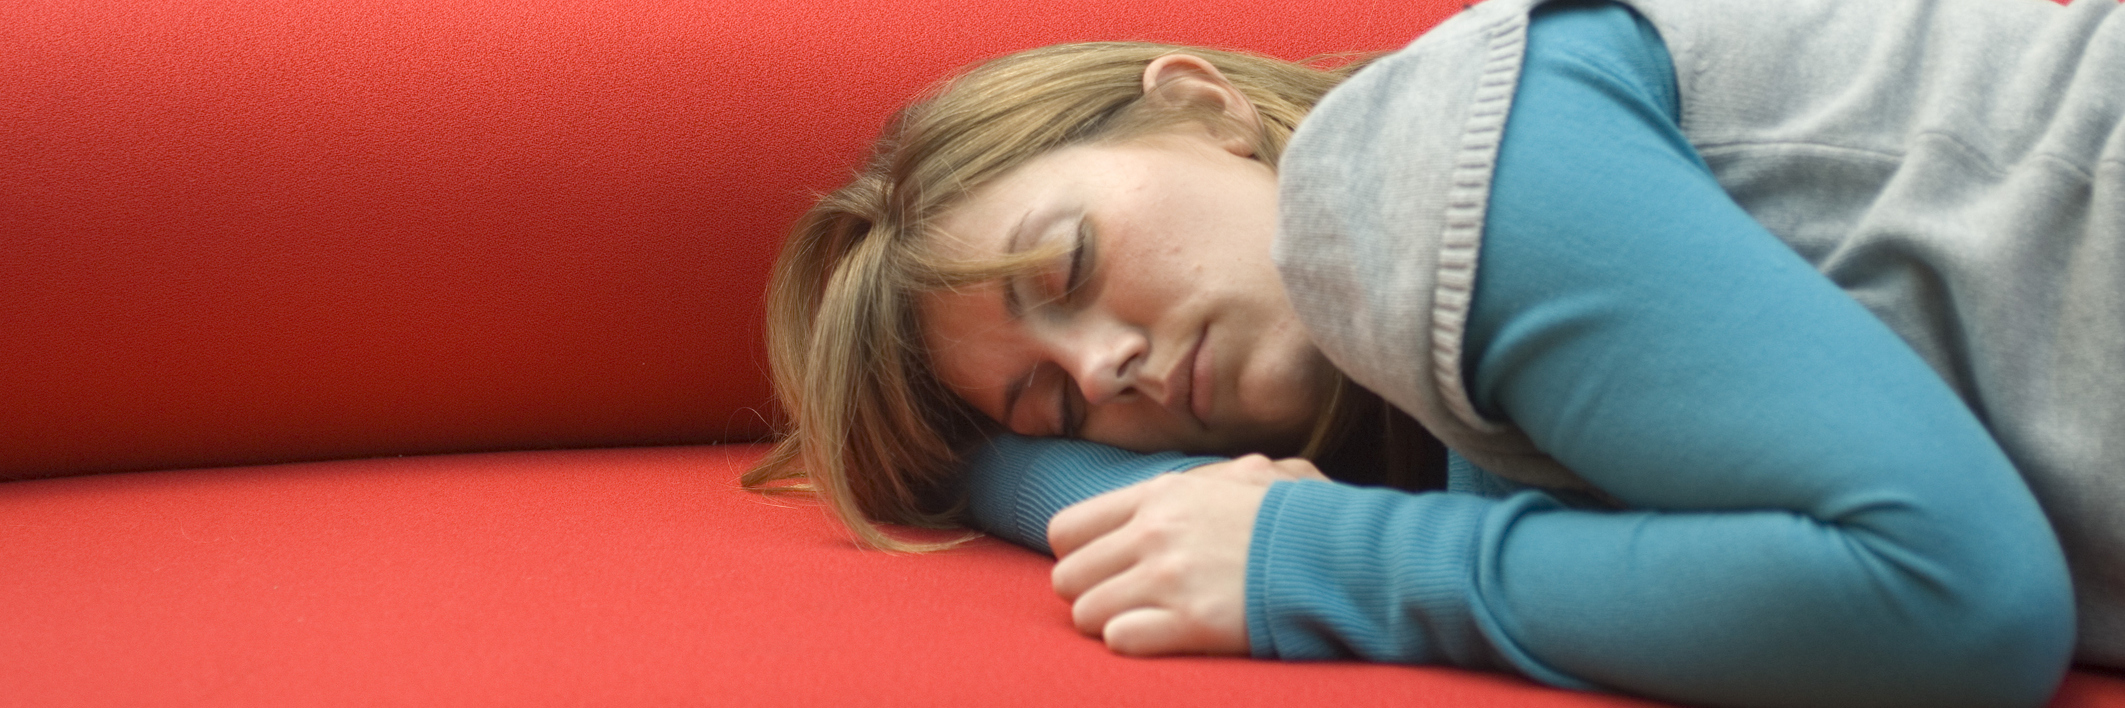 A woman sleeps on a red sofa.